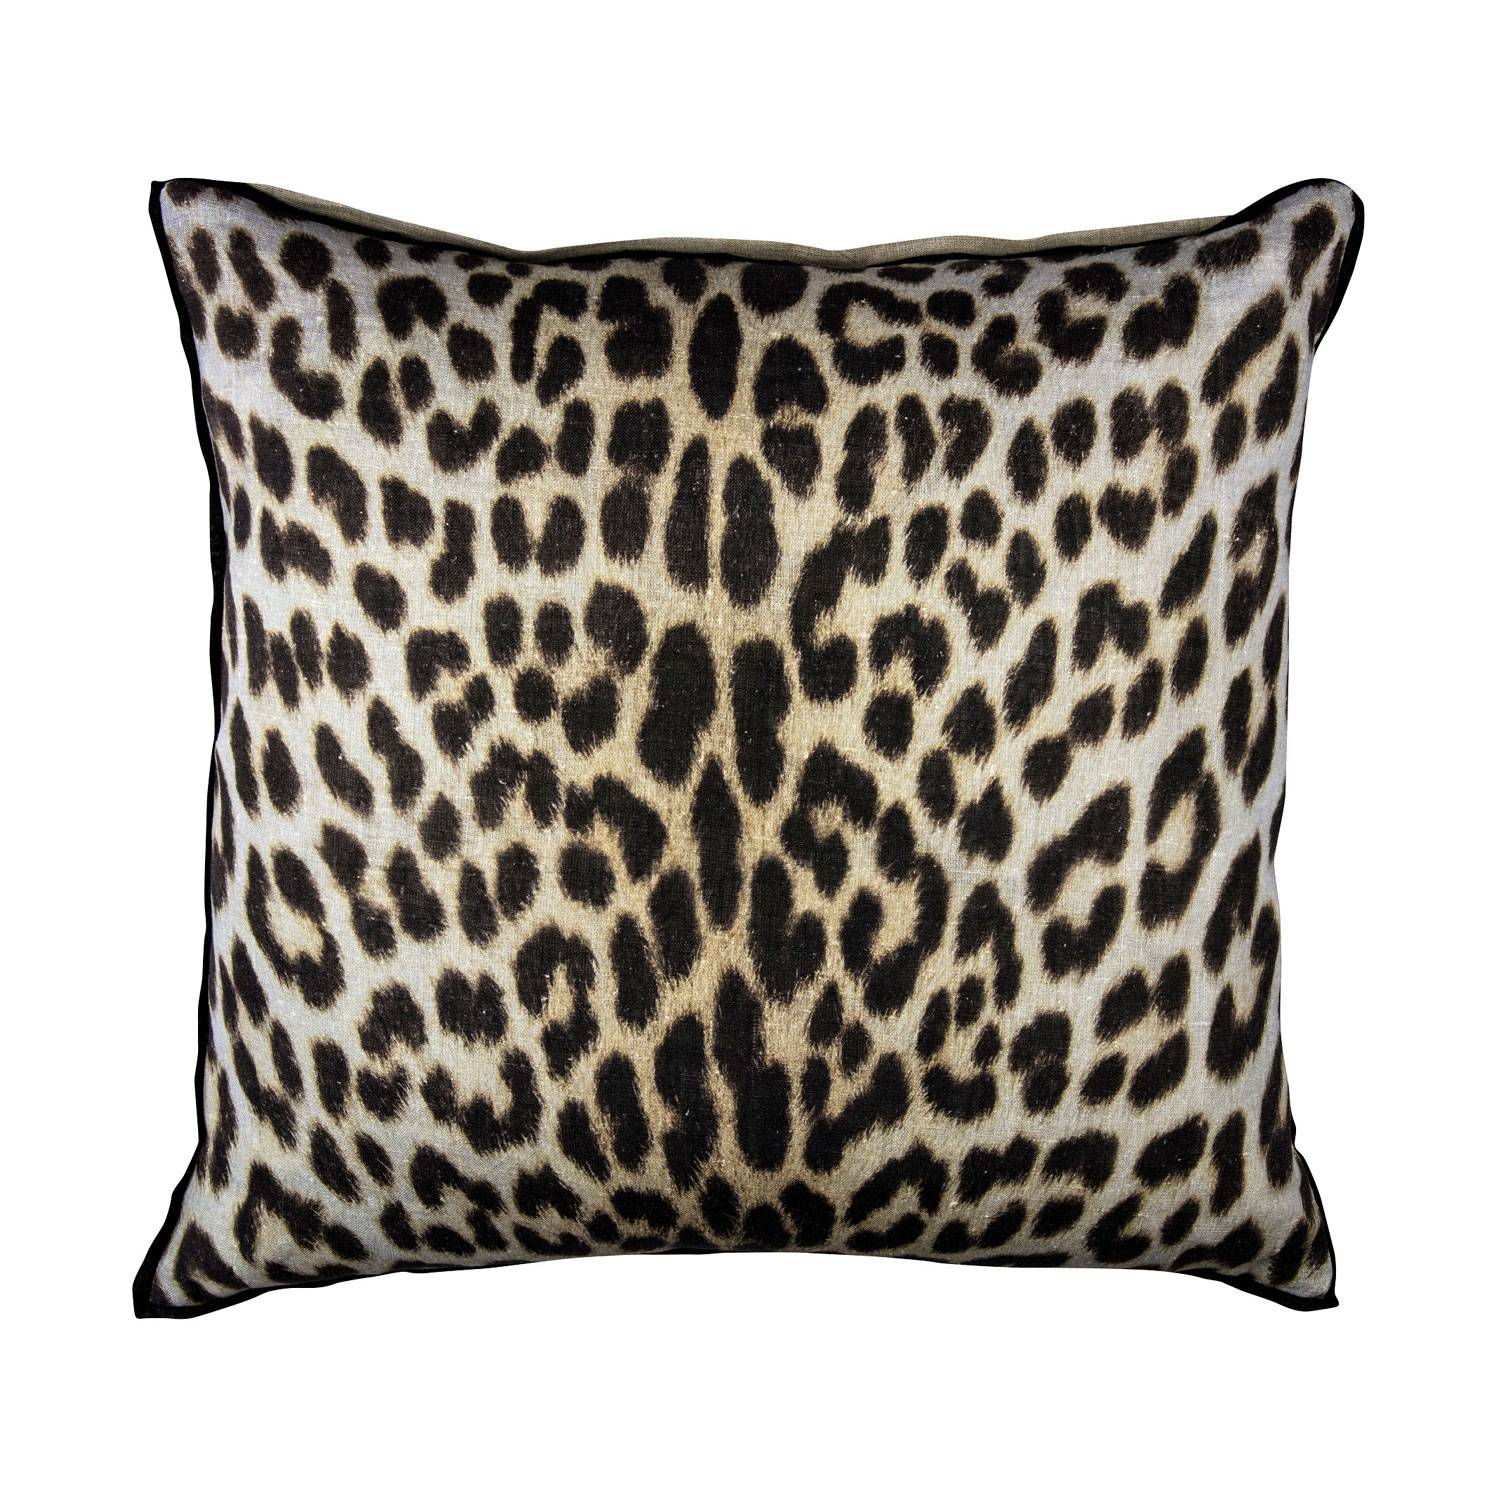 Day Home Day Panther Cushion Cover 50x50 cm